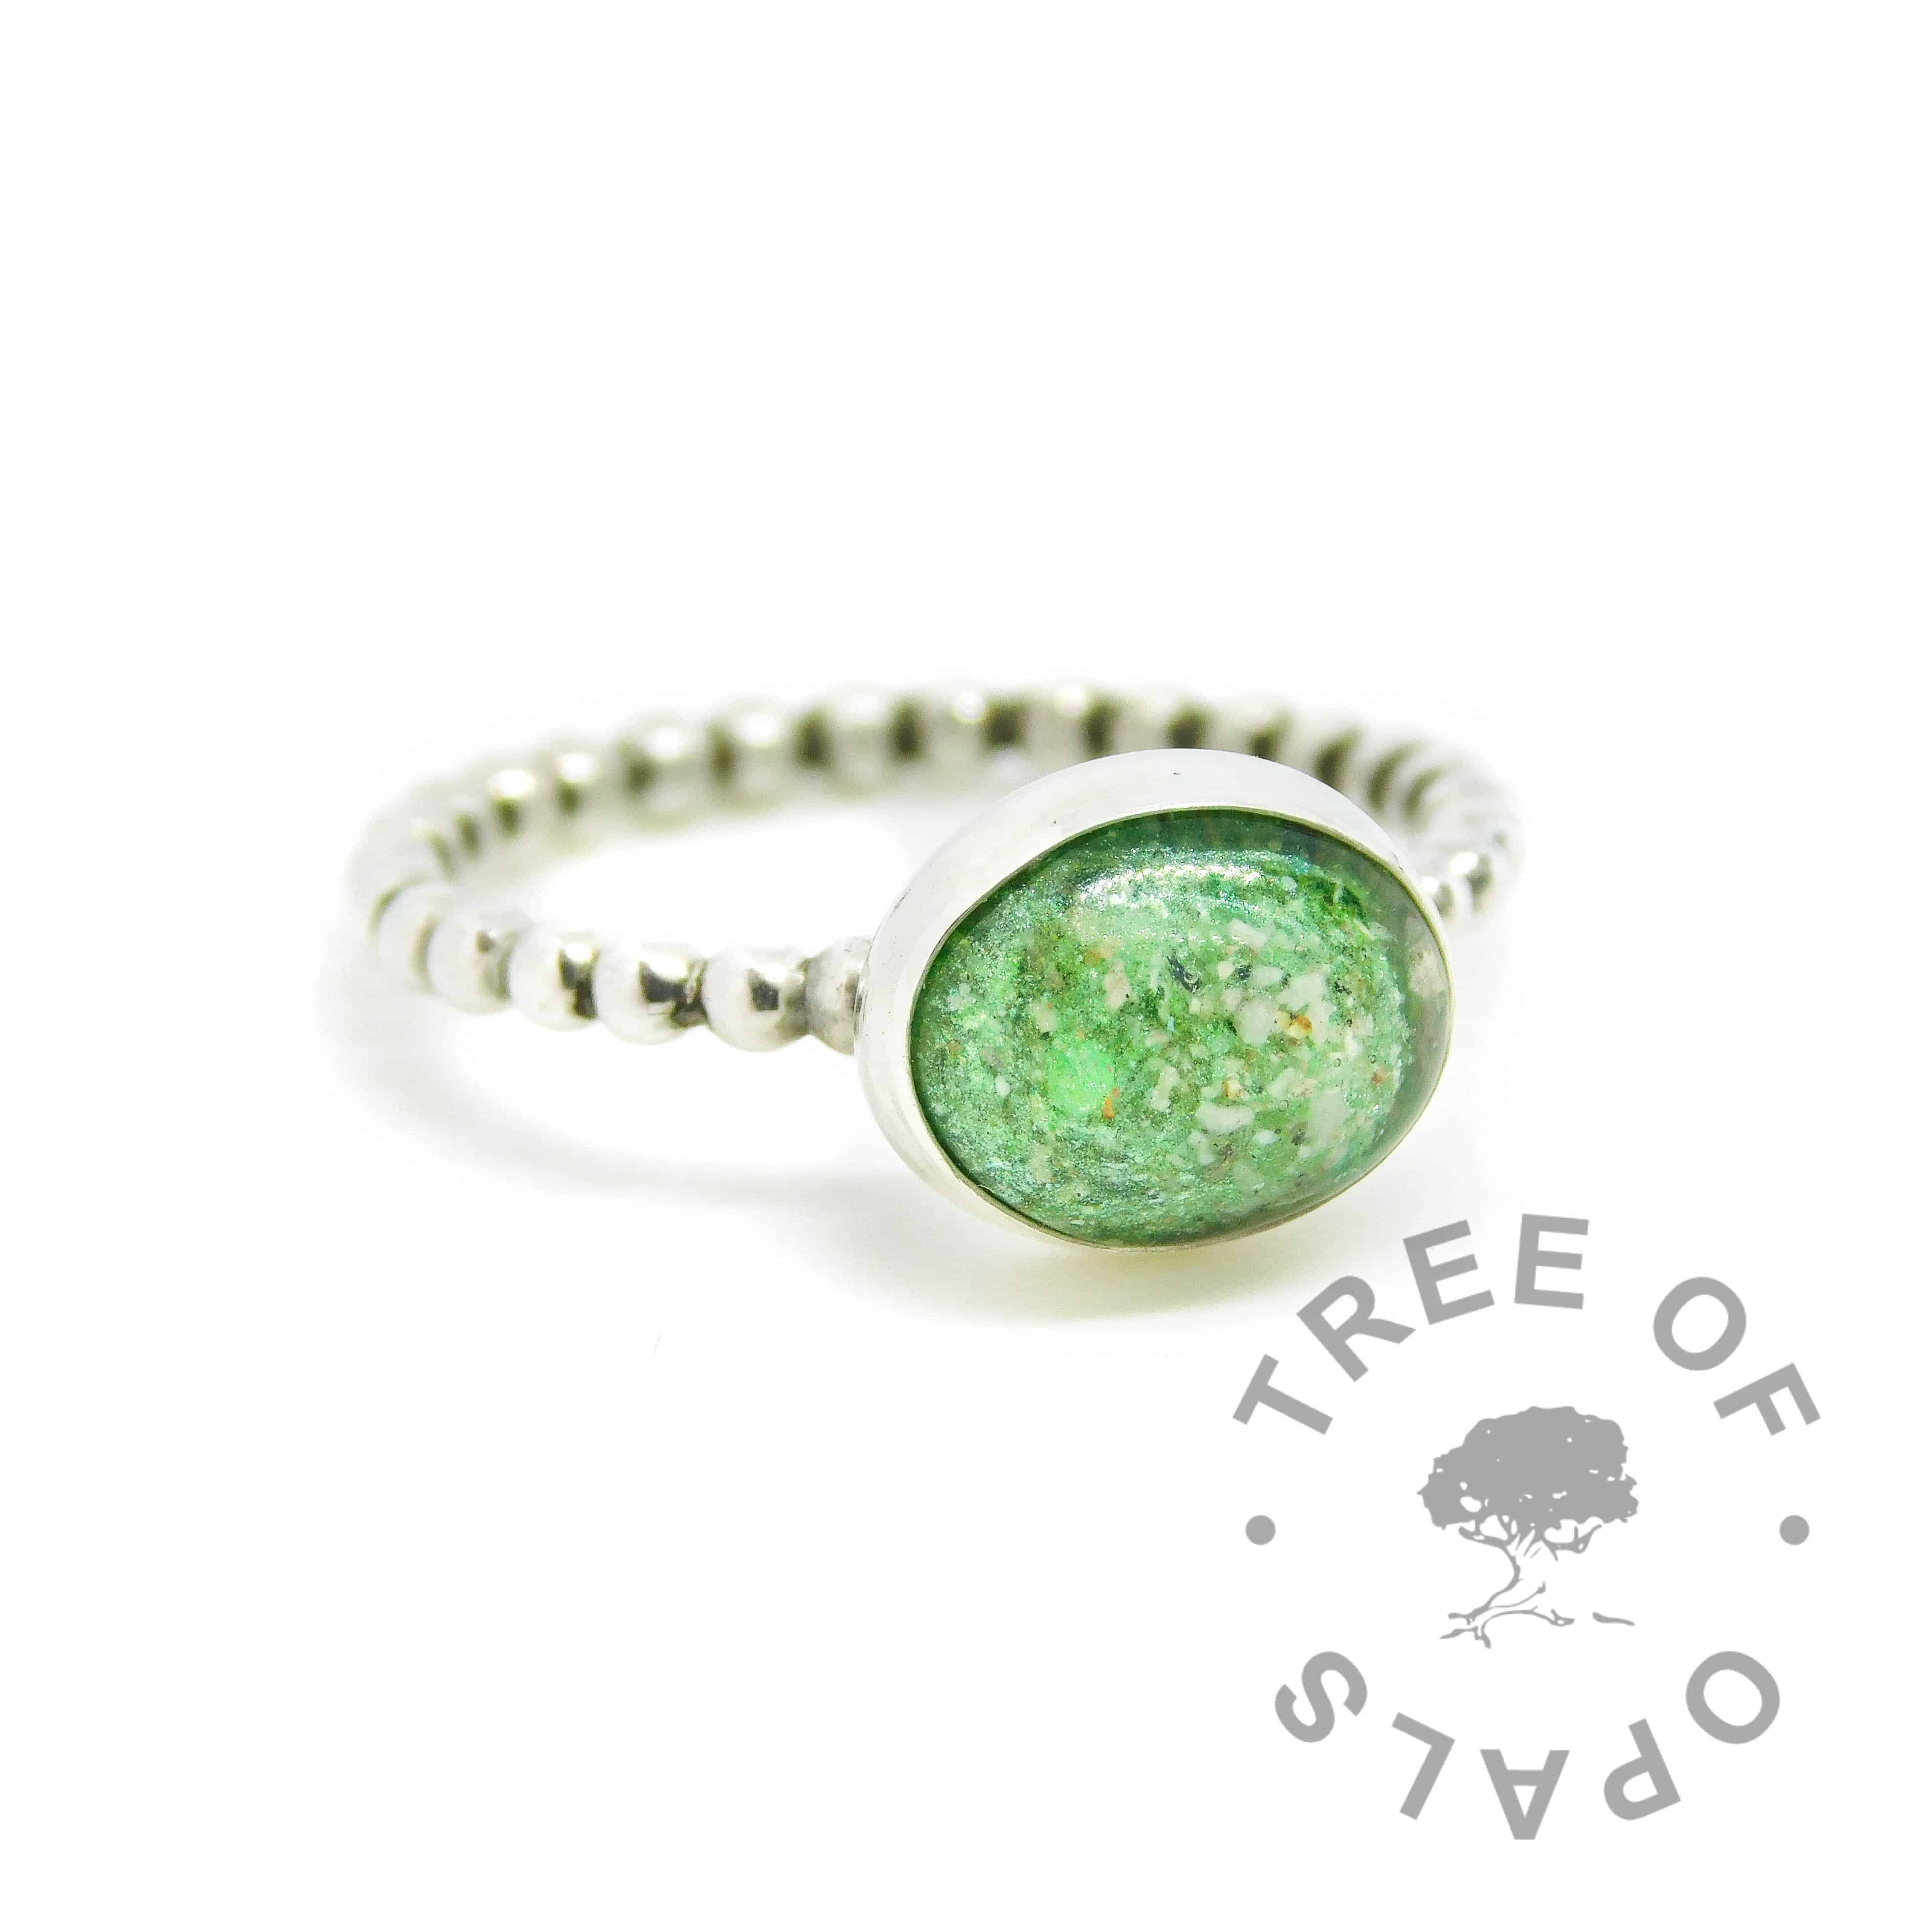 Cremation ash ring with basilisk green resin sparkle mix, no birthstone. 2mm wide bubble wire ring band handformed with solid 935 Argentium silver (slightly purer than sterling silver), and 10x8mm pure silver bezel cup. Watermarked copyright Tree of Opals memorial jewellery image